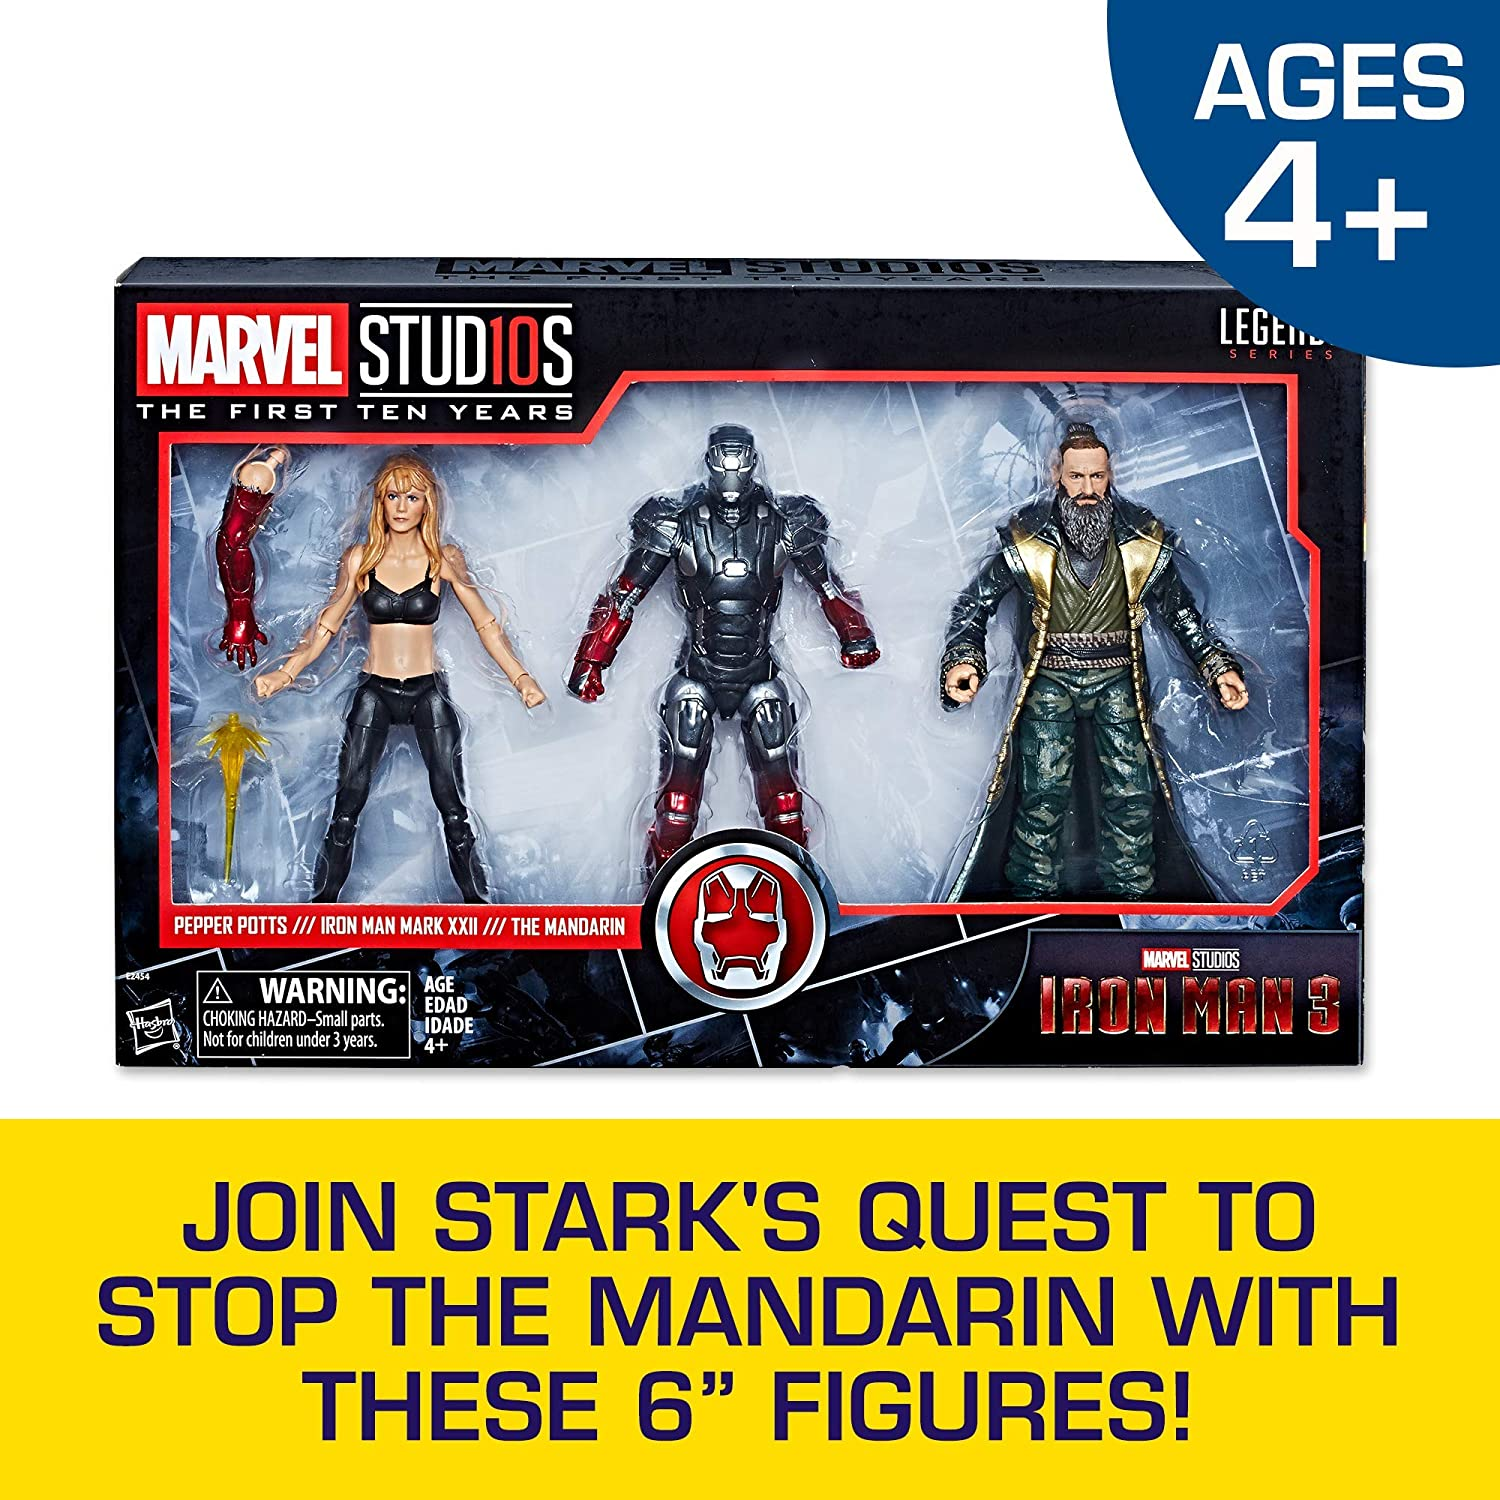 Marvel E2454 Hasbro Legends Series Studios The First Ten Years Iron Man 3 Movie Iron Man Mark XXII, Pepper Potts, The Mandarin 6-inch Figure 3-Pack (MCU), Brown/a (Amazon Exclusive)